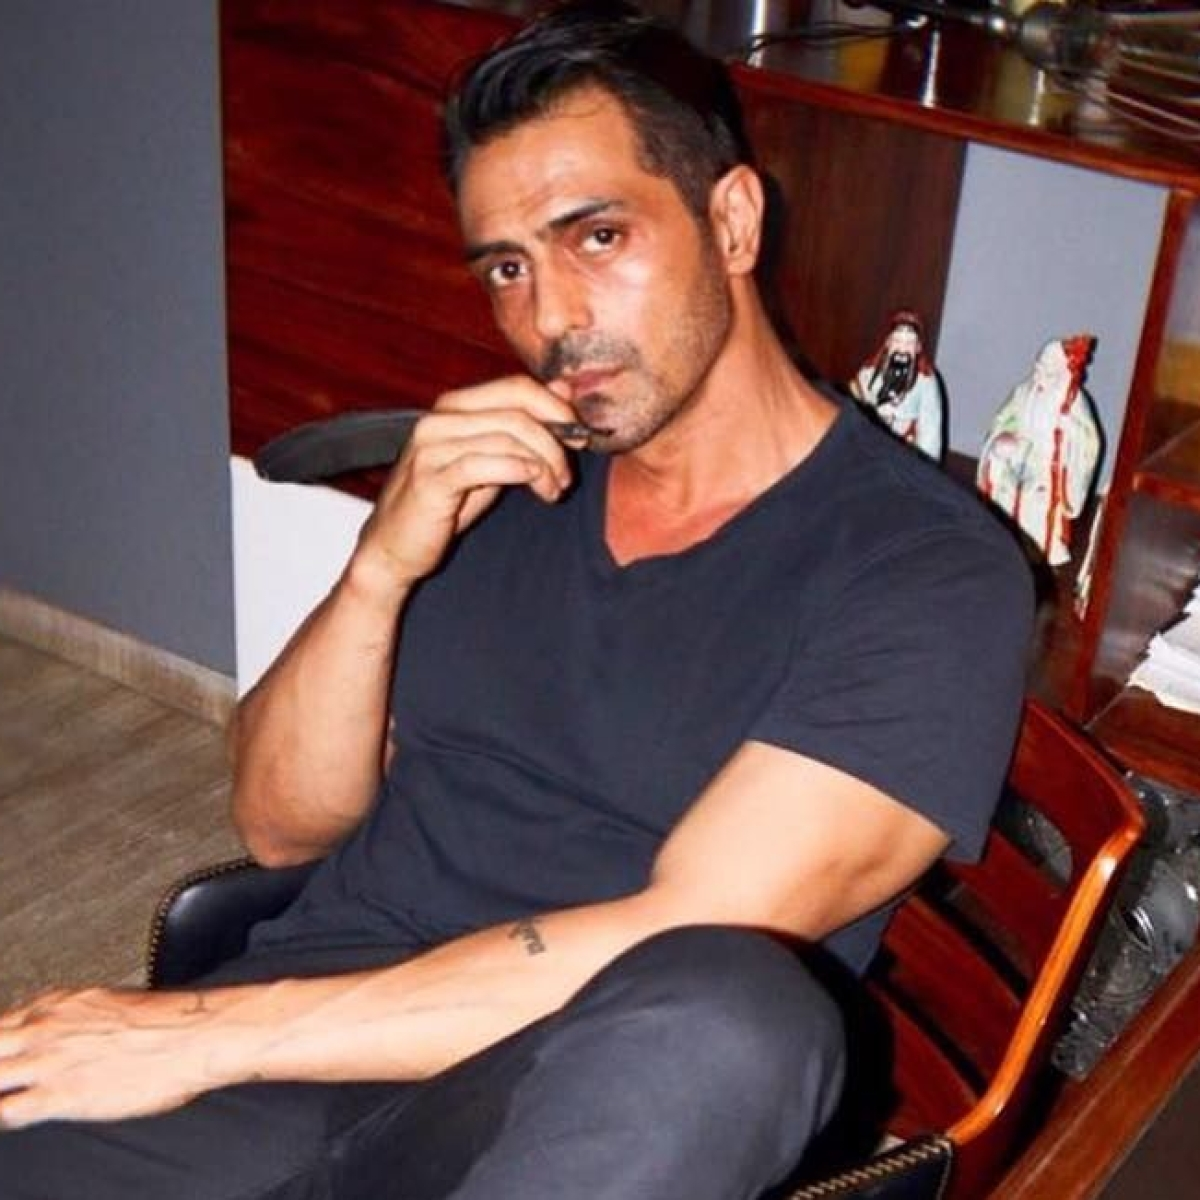 'Many friends disappeared': Amid drug probe, Arjun Rampal shares what he learned in 2020